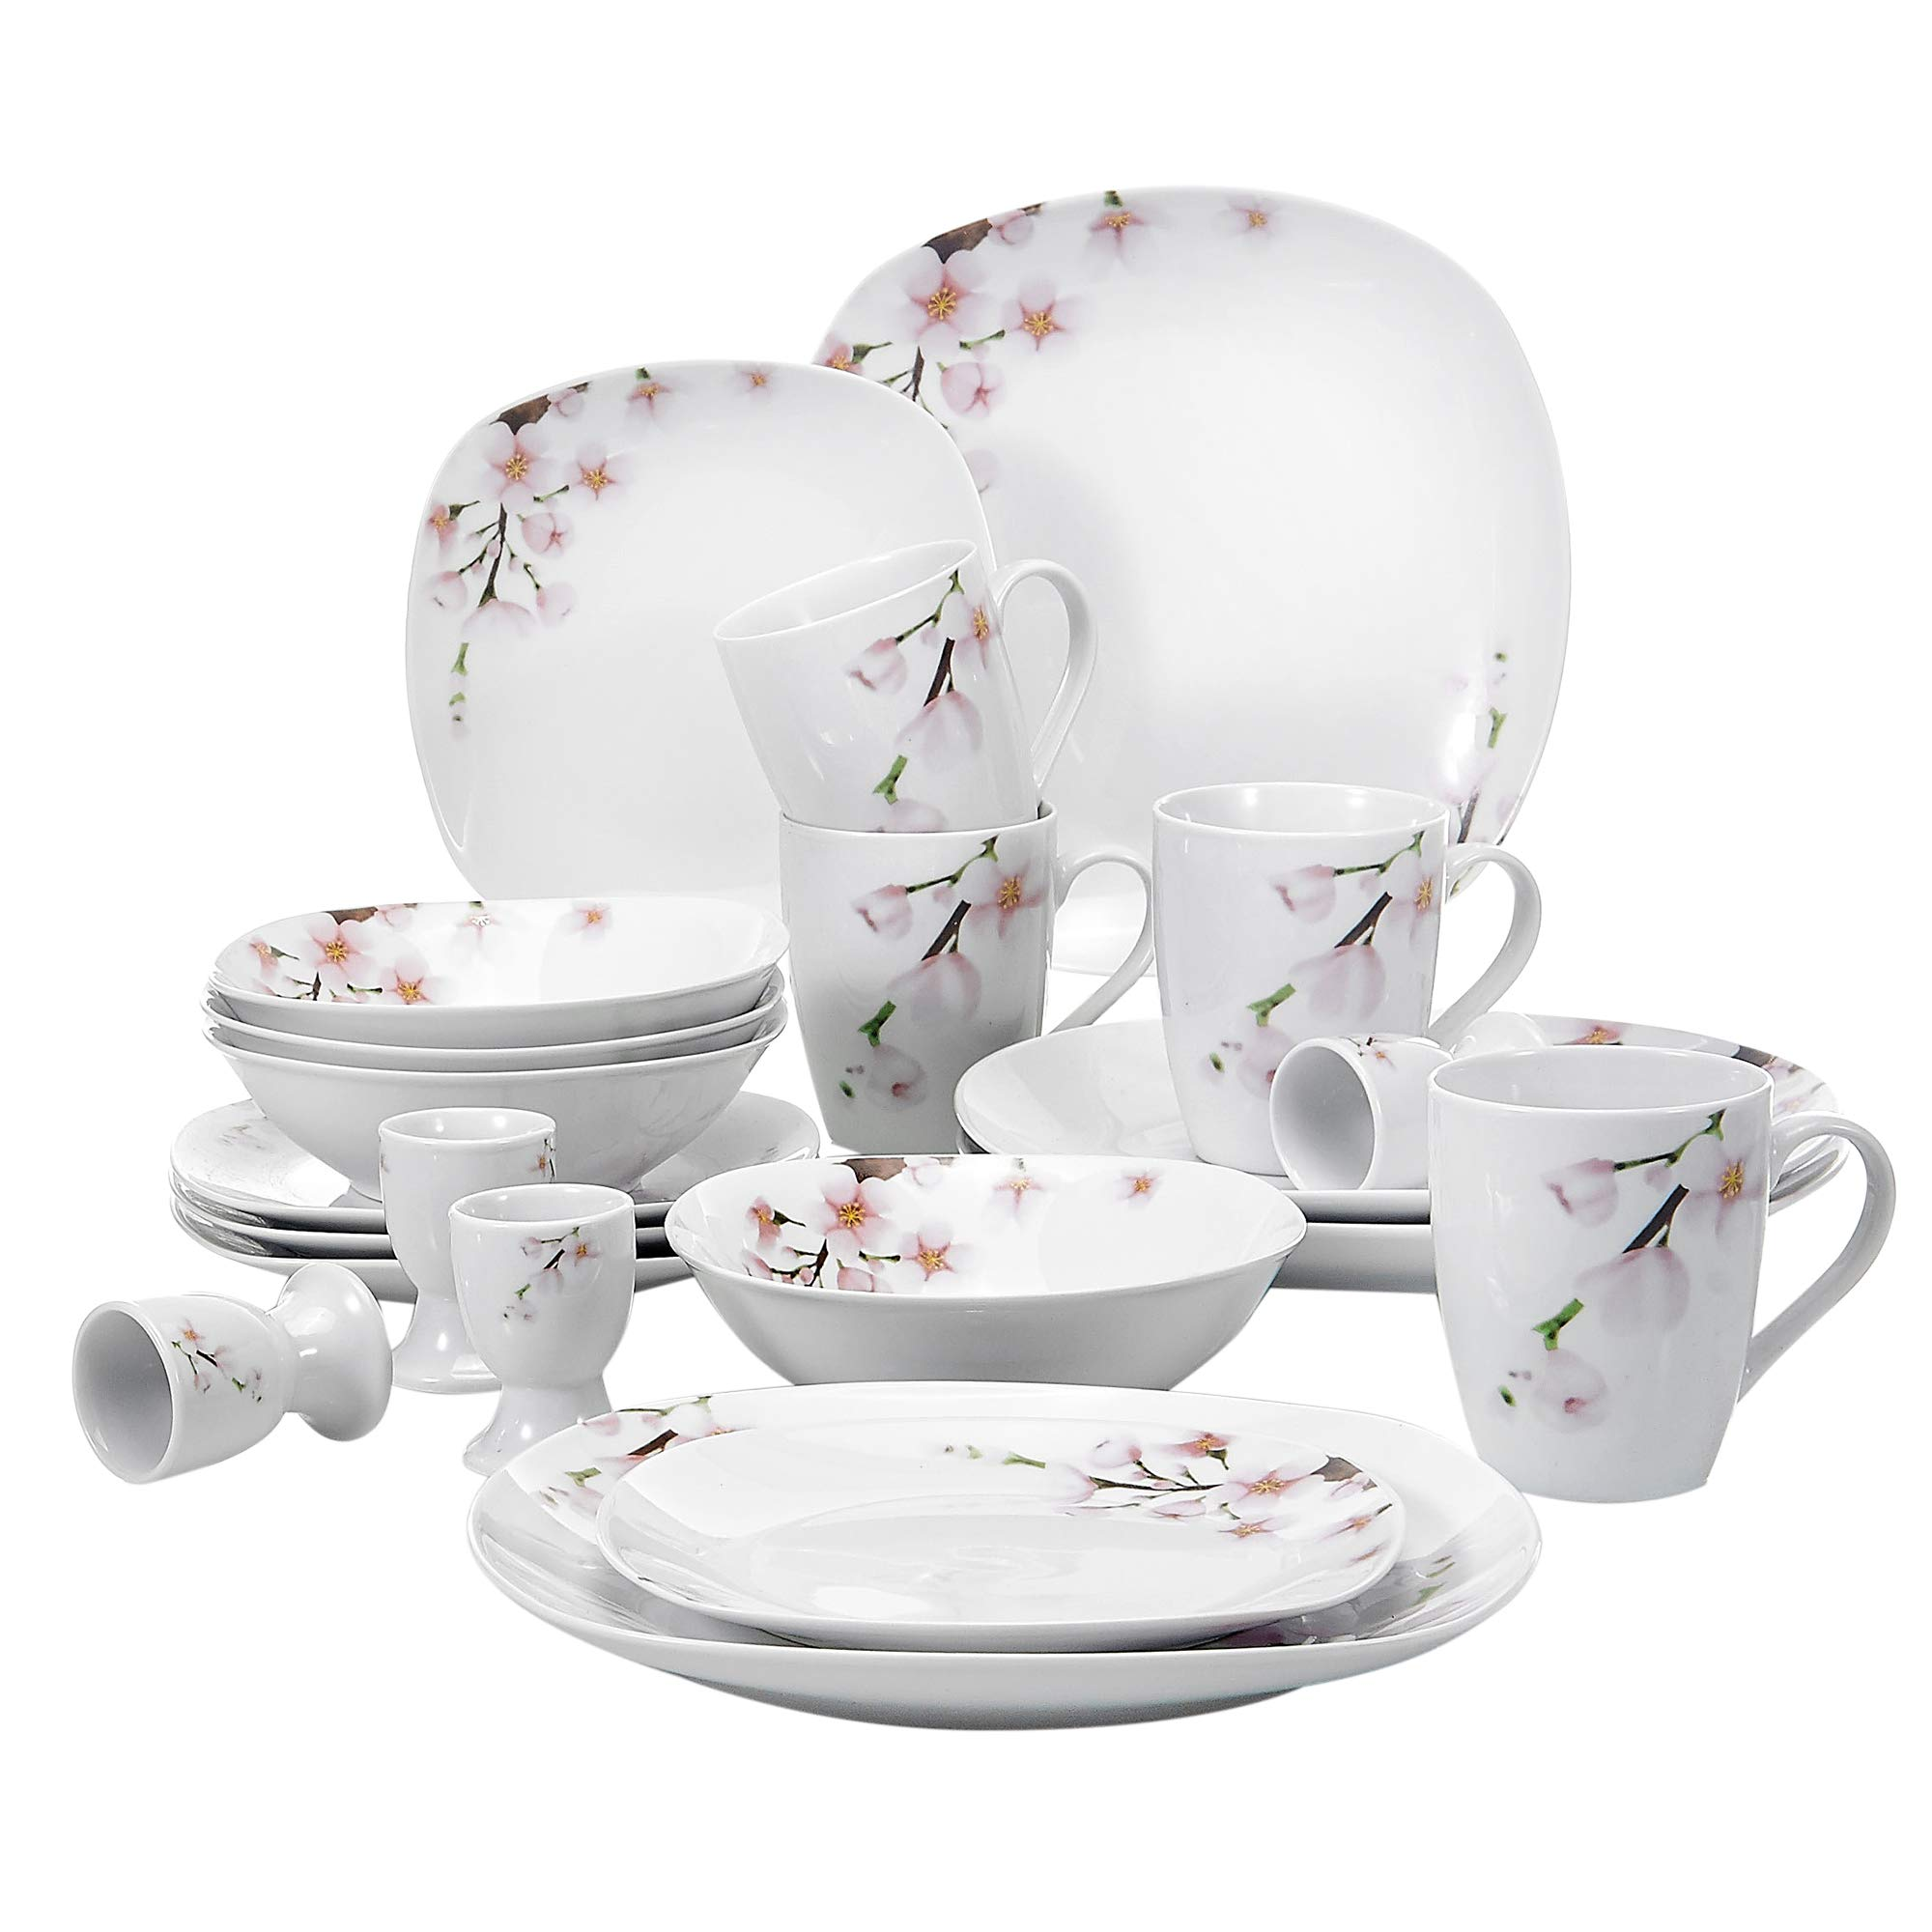 VEWEET 20-Piece Square Porcelain Dinnerware Sets